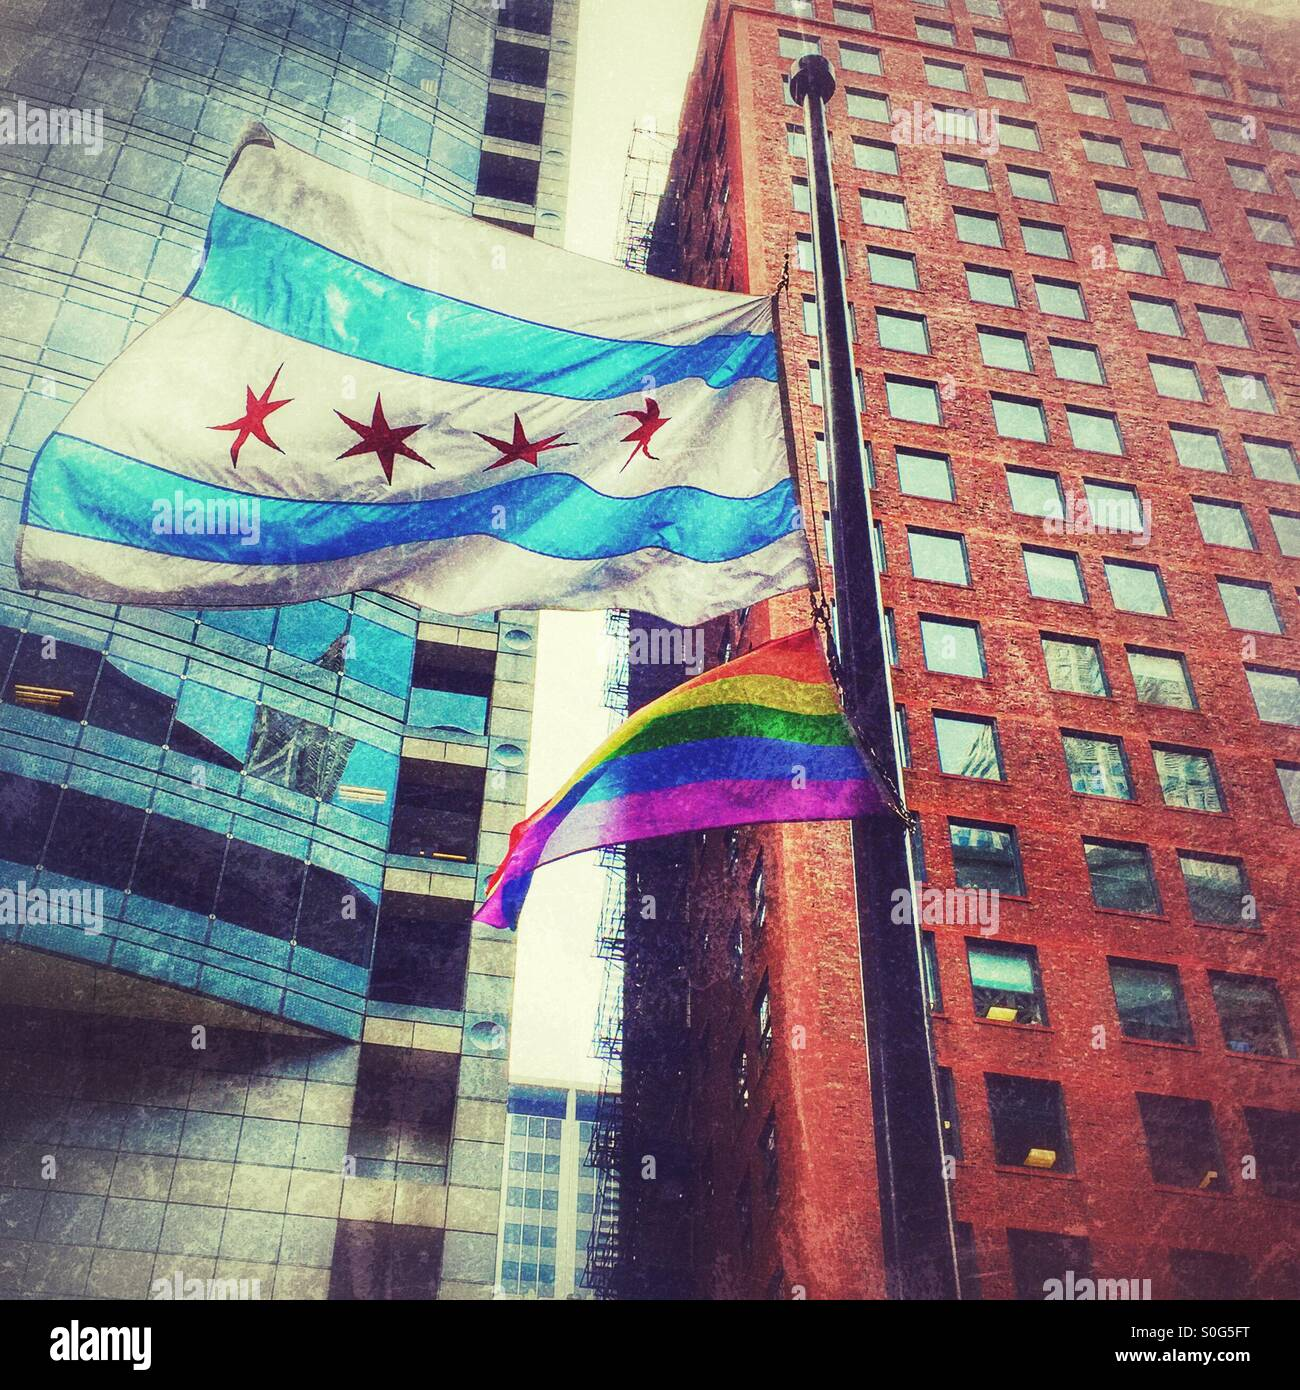 Pride flag waving along with Chicago flag in the Chicago Loop - Stock Image